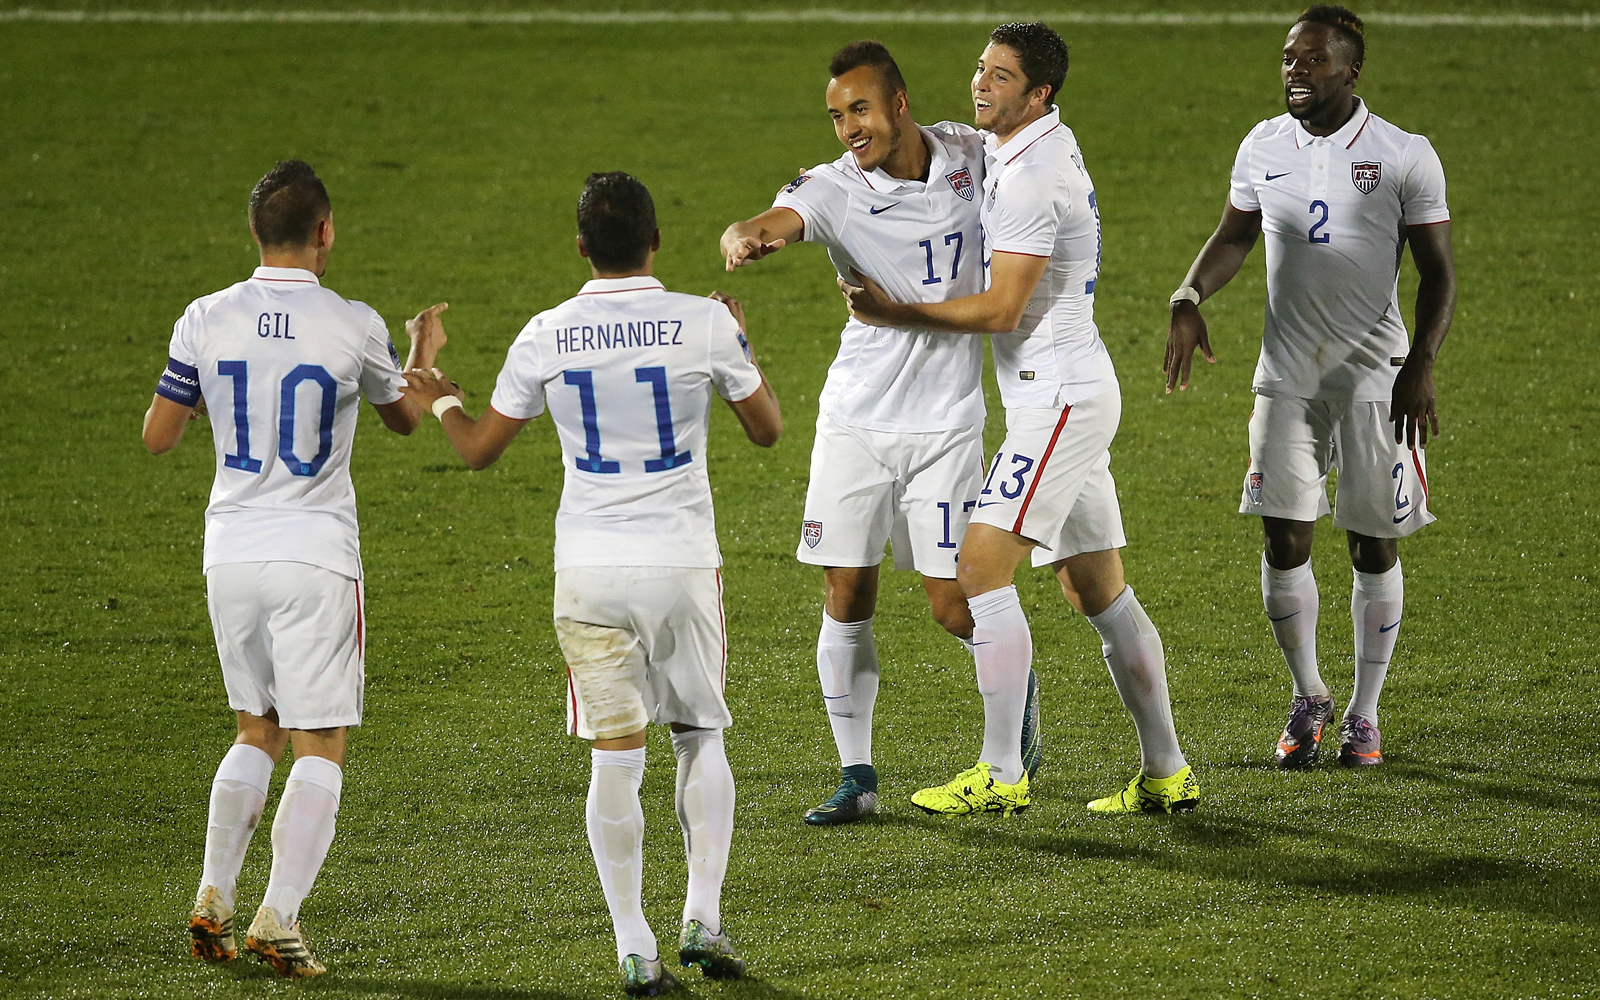 There was plenty of credit to go around, as the Americans finished off a perfect group run in Olympic qualifying with a 4-0 win over Panama. Jordan Morris and Jerome Kiesewetter came on at halftime and provided the spark needed to seize the three points.